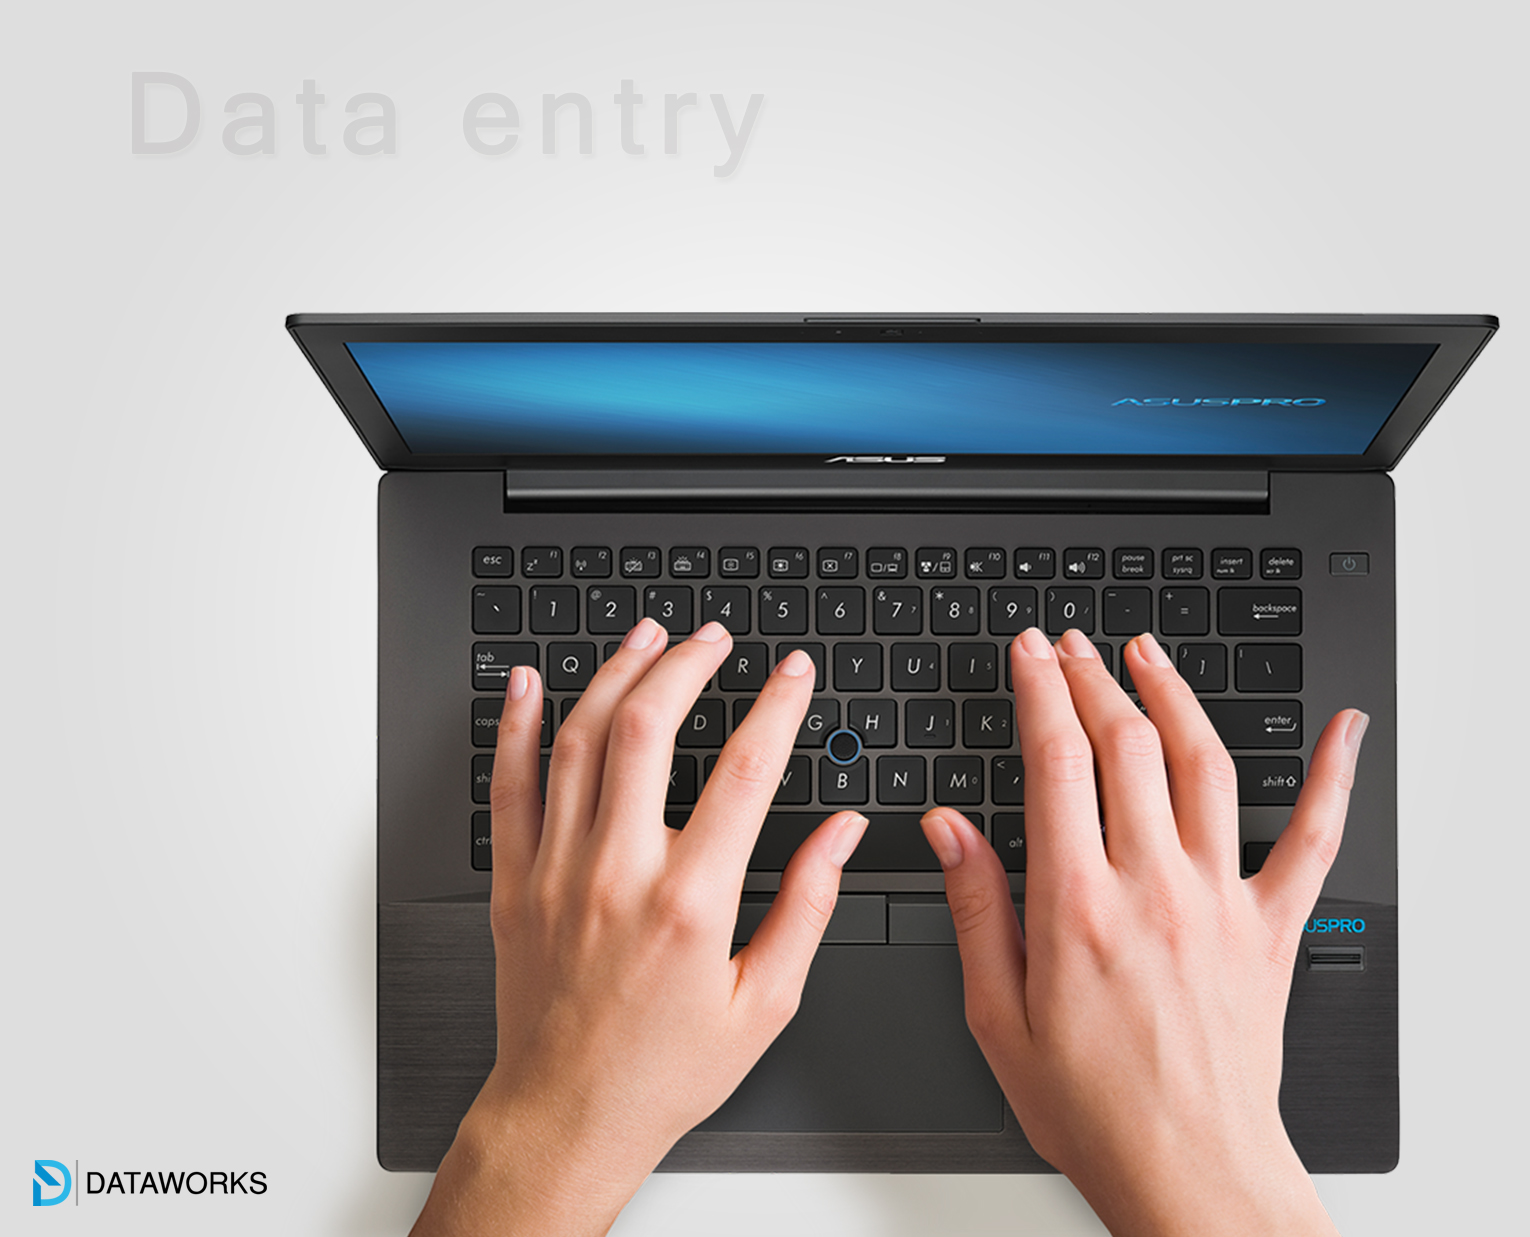 5 tips and tricks for successful data entry